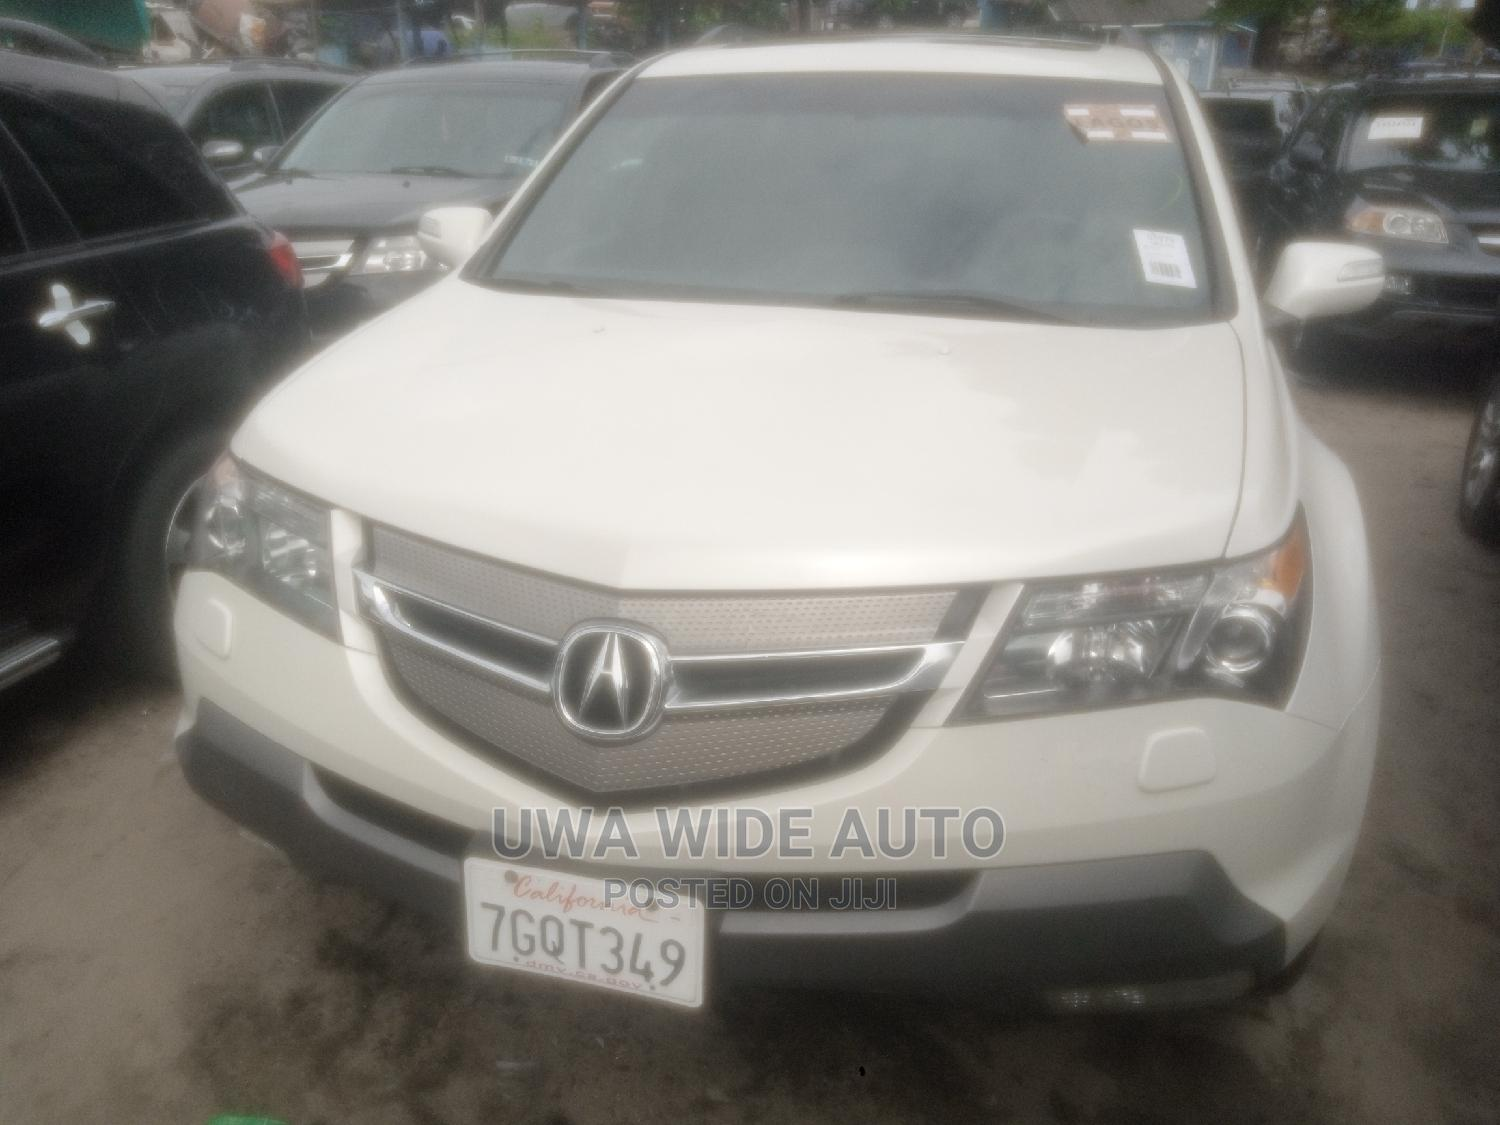 Archive: Acura MDX 2007 SUV 4dr AWD (3.7 6cyl 5A) White